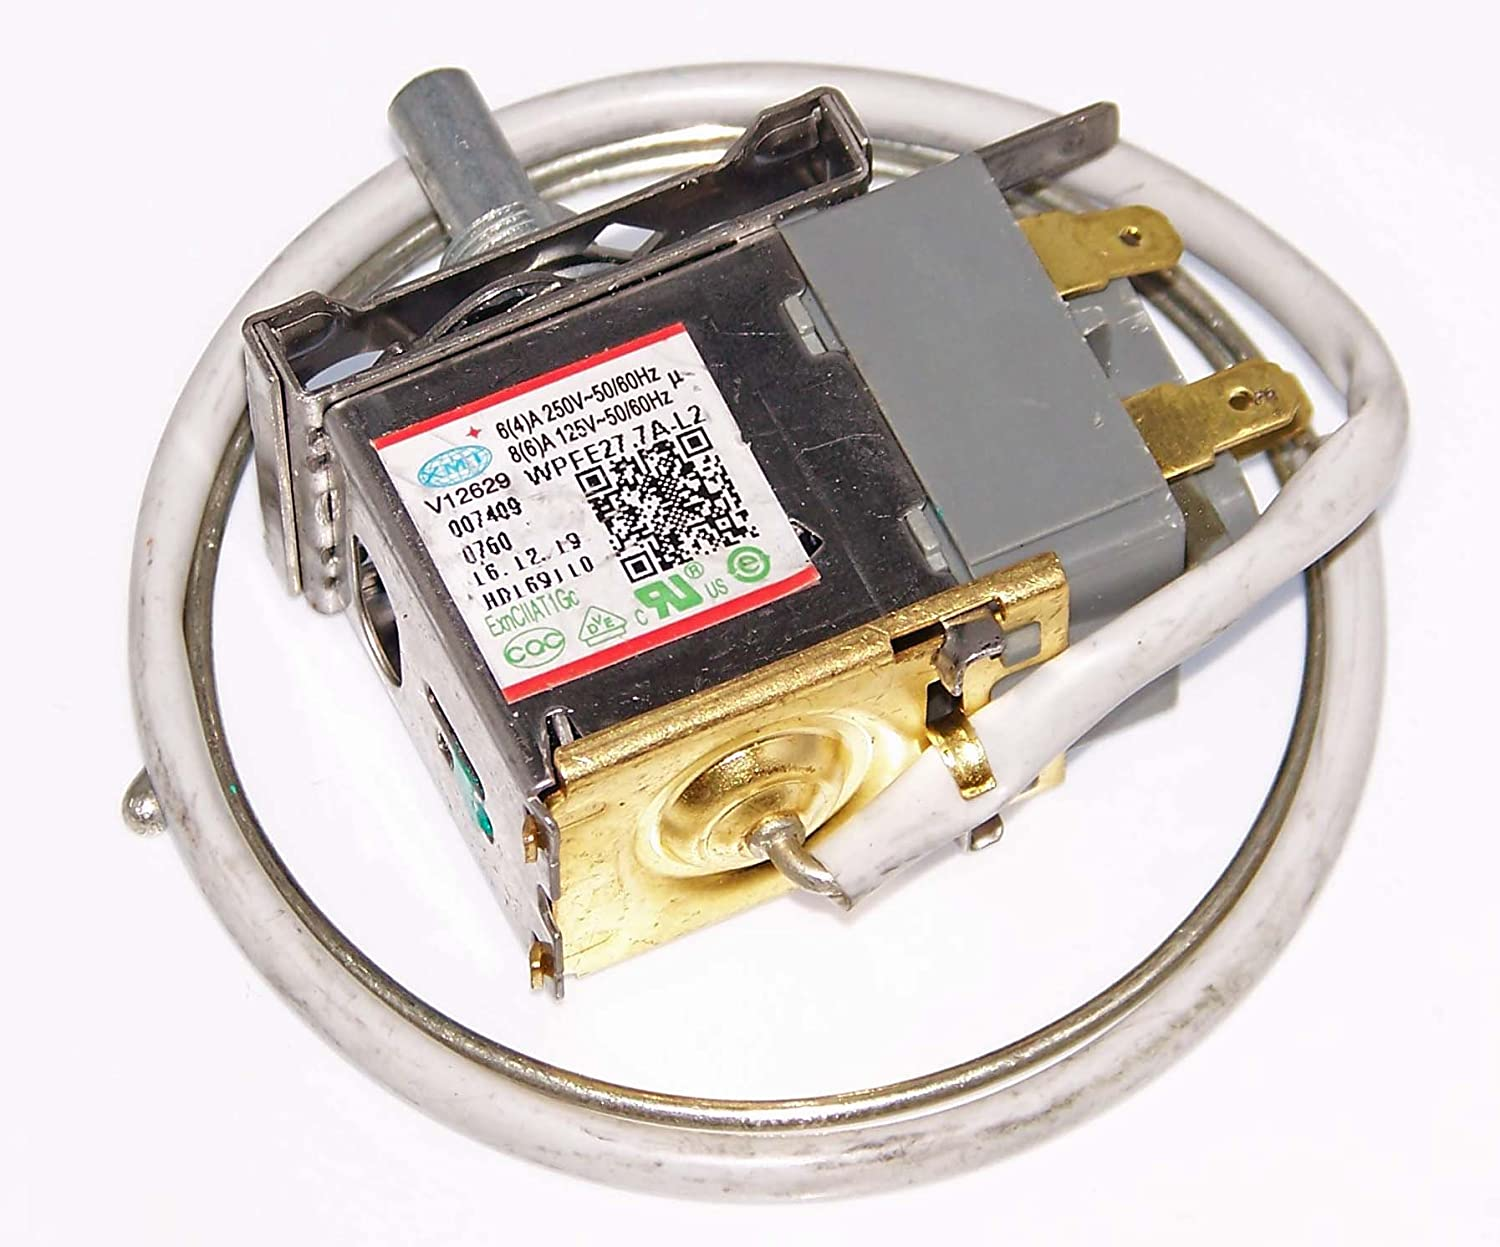 OEM Haier Freezer Thermostat Specifically For Haier HF50CM23NW, HF50CW20W, HF71CL53NW, HF71CM33NW, HF71CW20W, HFC3501ACW